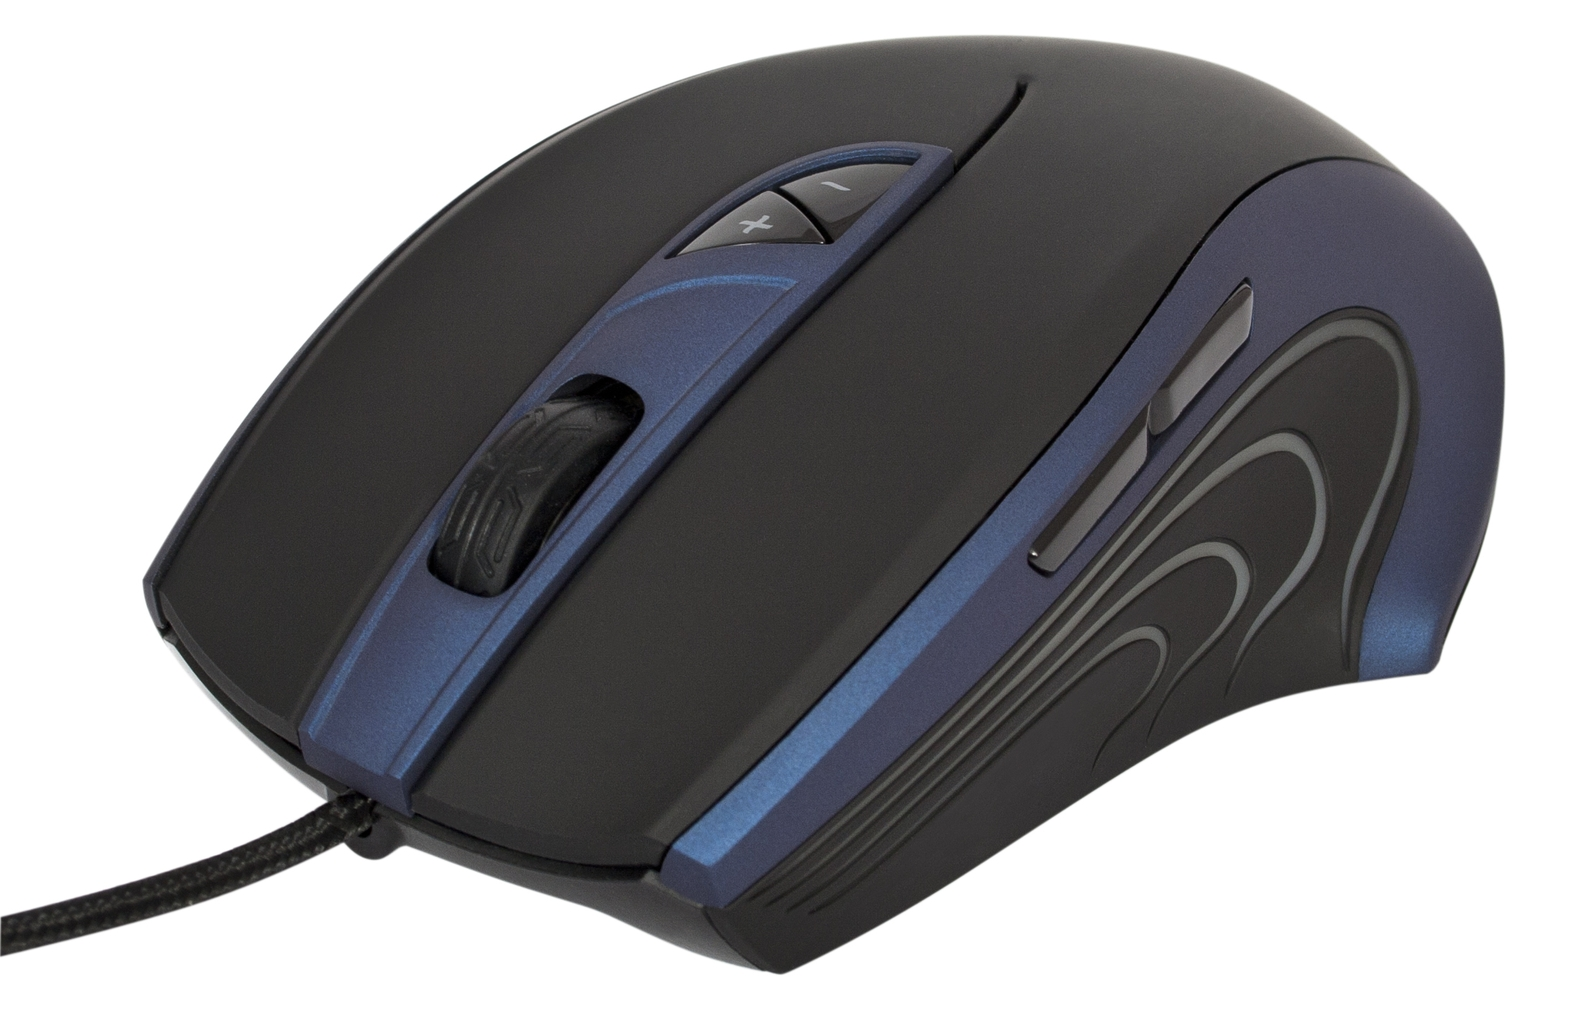 Wired gaming mouse Defender Warhead GMX-1800 laser,7 buttons,800-6000dpi